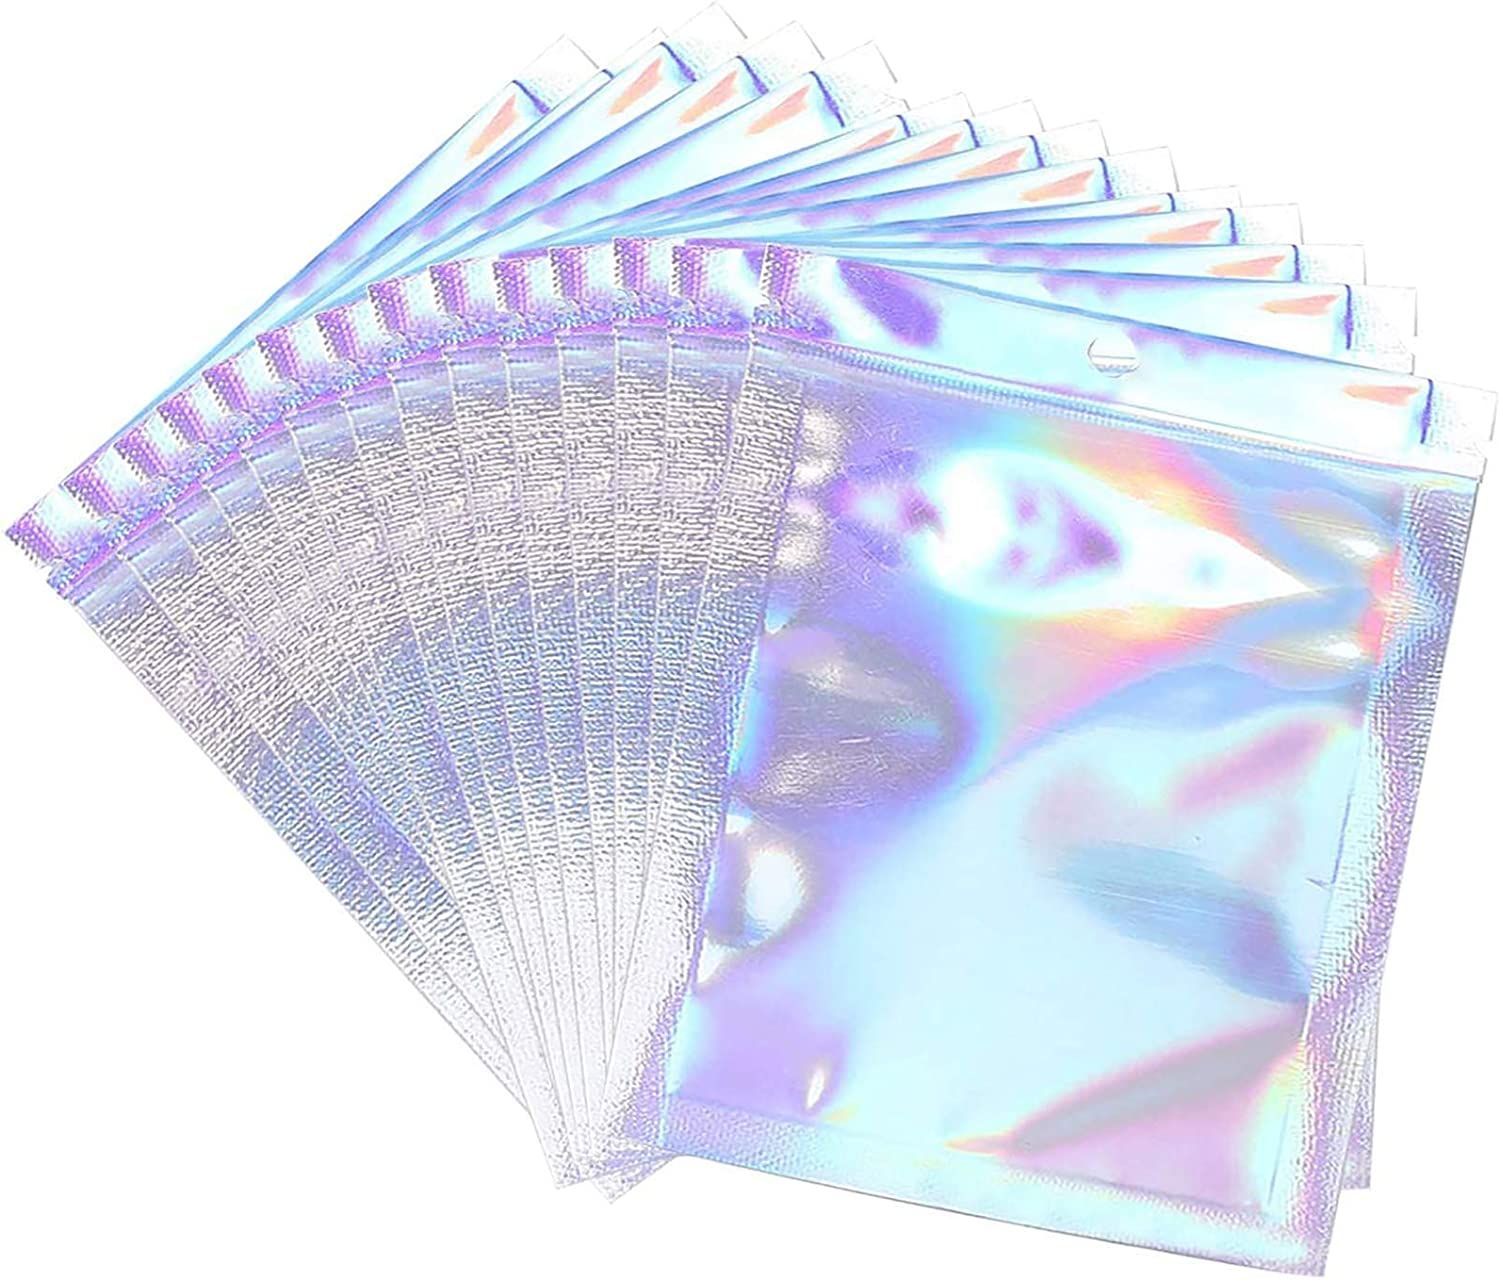 Trunple Smell Proof Bags & Resealable Foil Pouch Bag [100 PCS ] Great for Party Favor Food Storage (Holographic Color, 8 x 5.5 Inch)